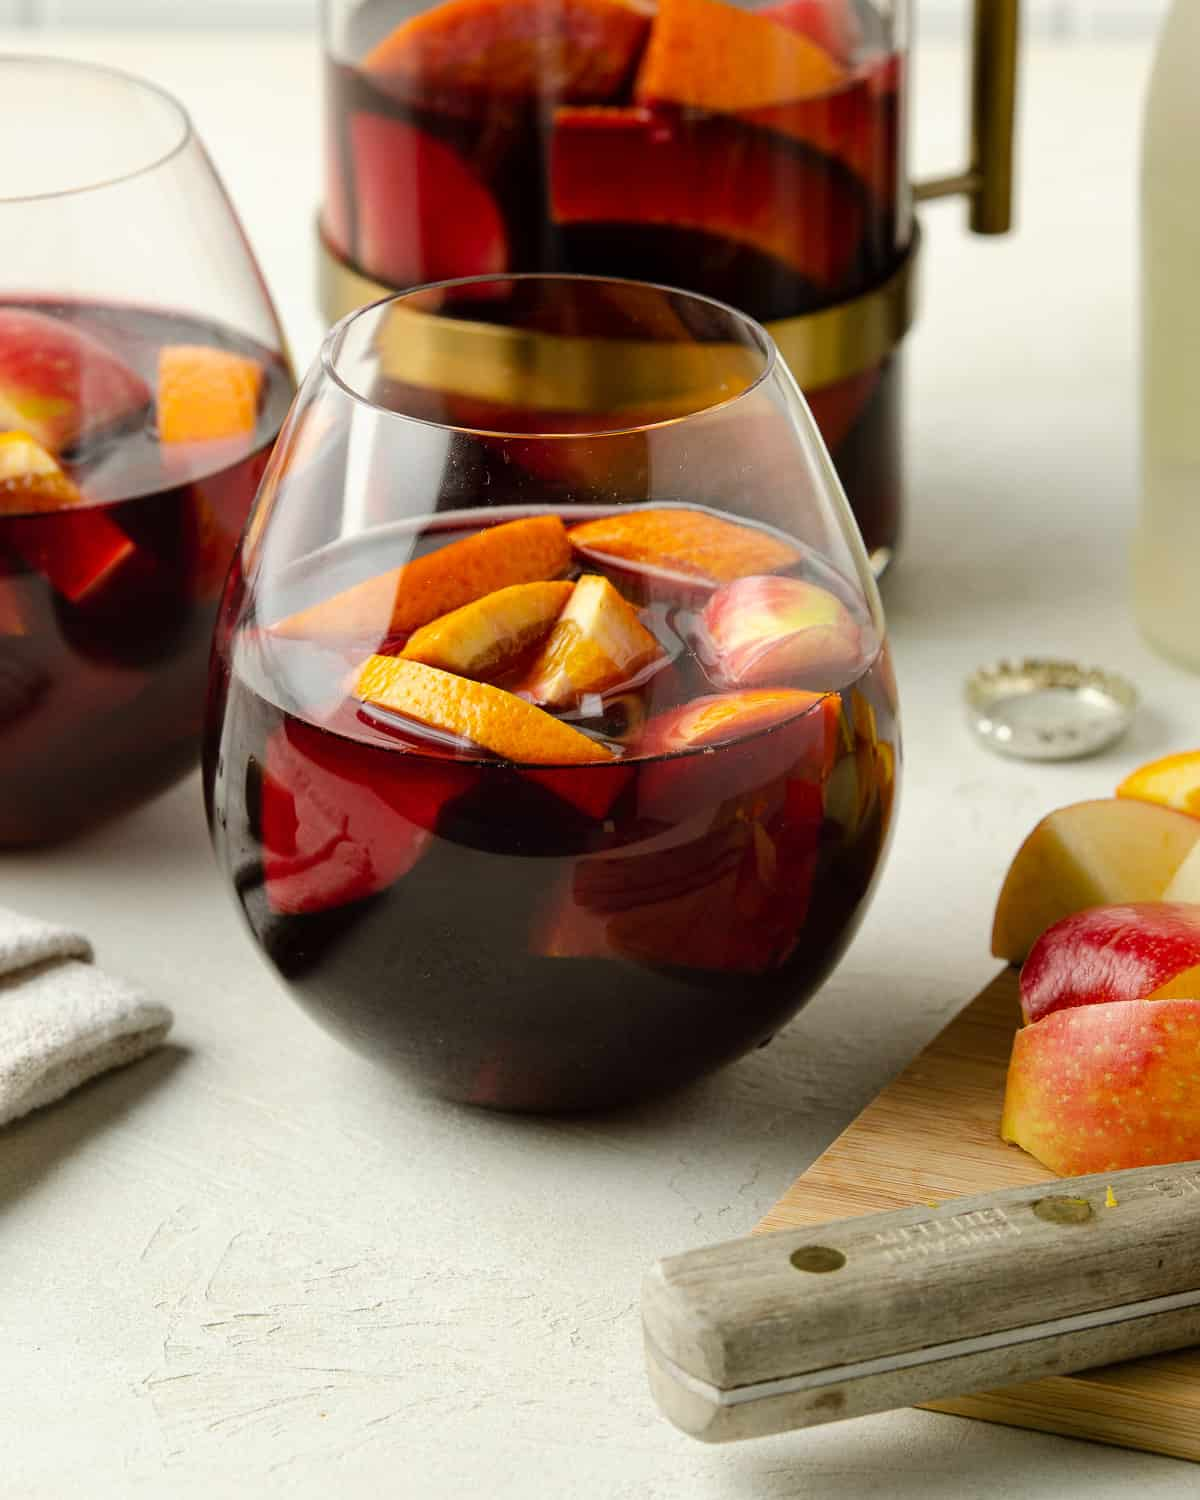 A close up of a glass of red wine sangria next to a cutting board.